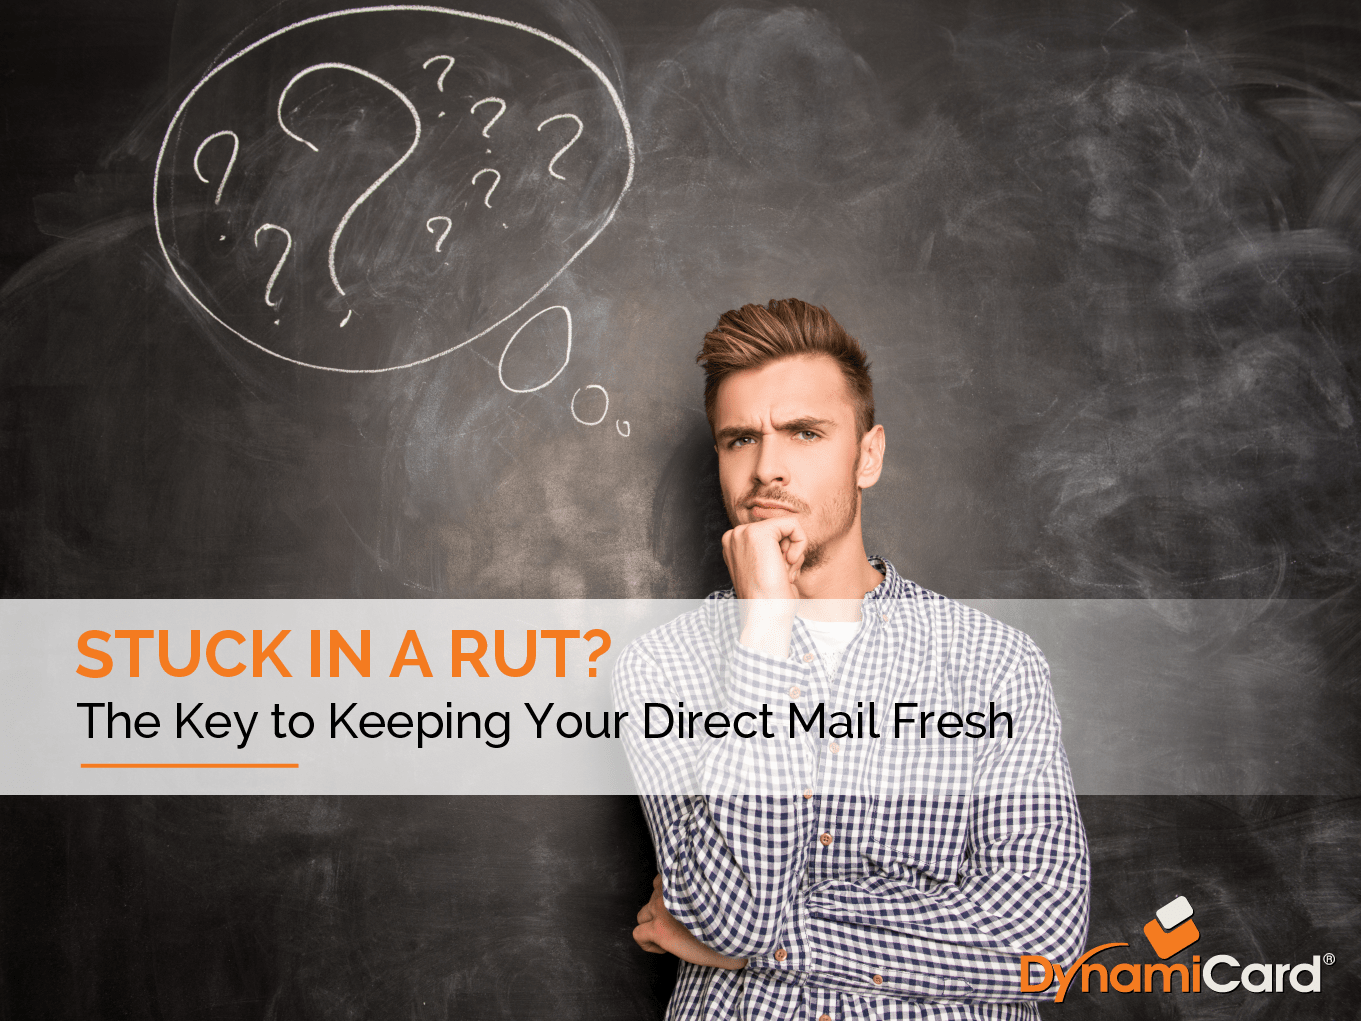 Direct Mail Marketing